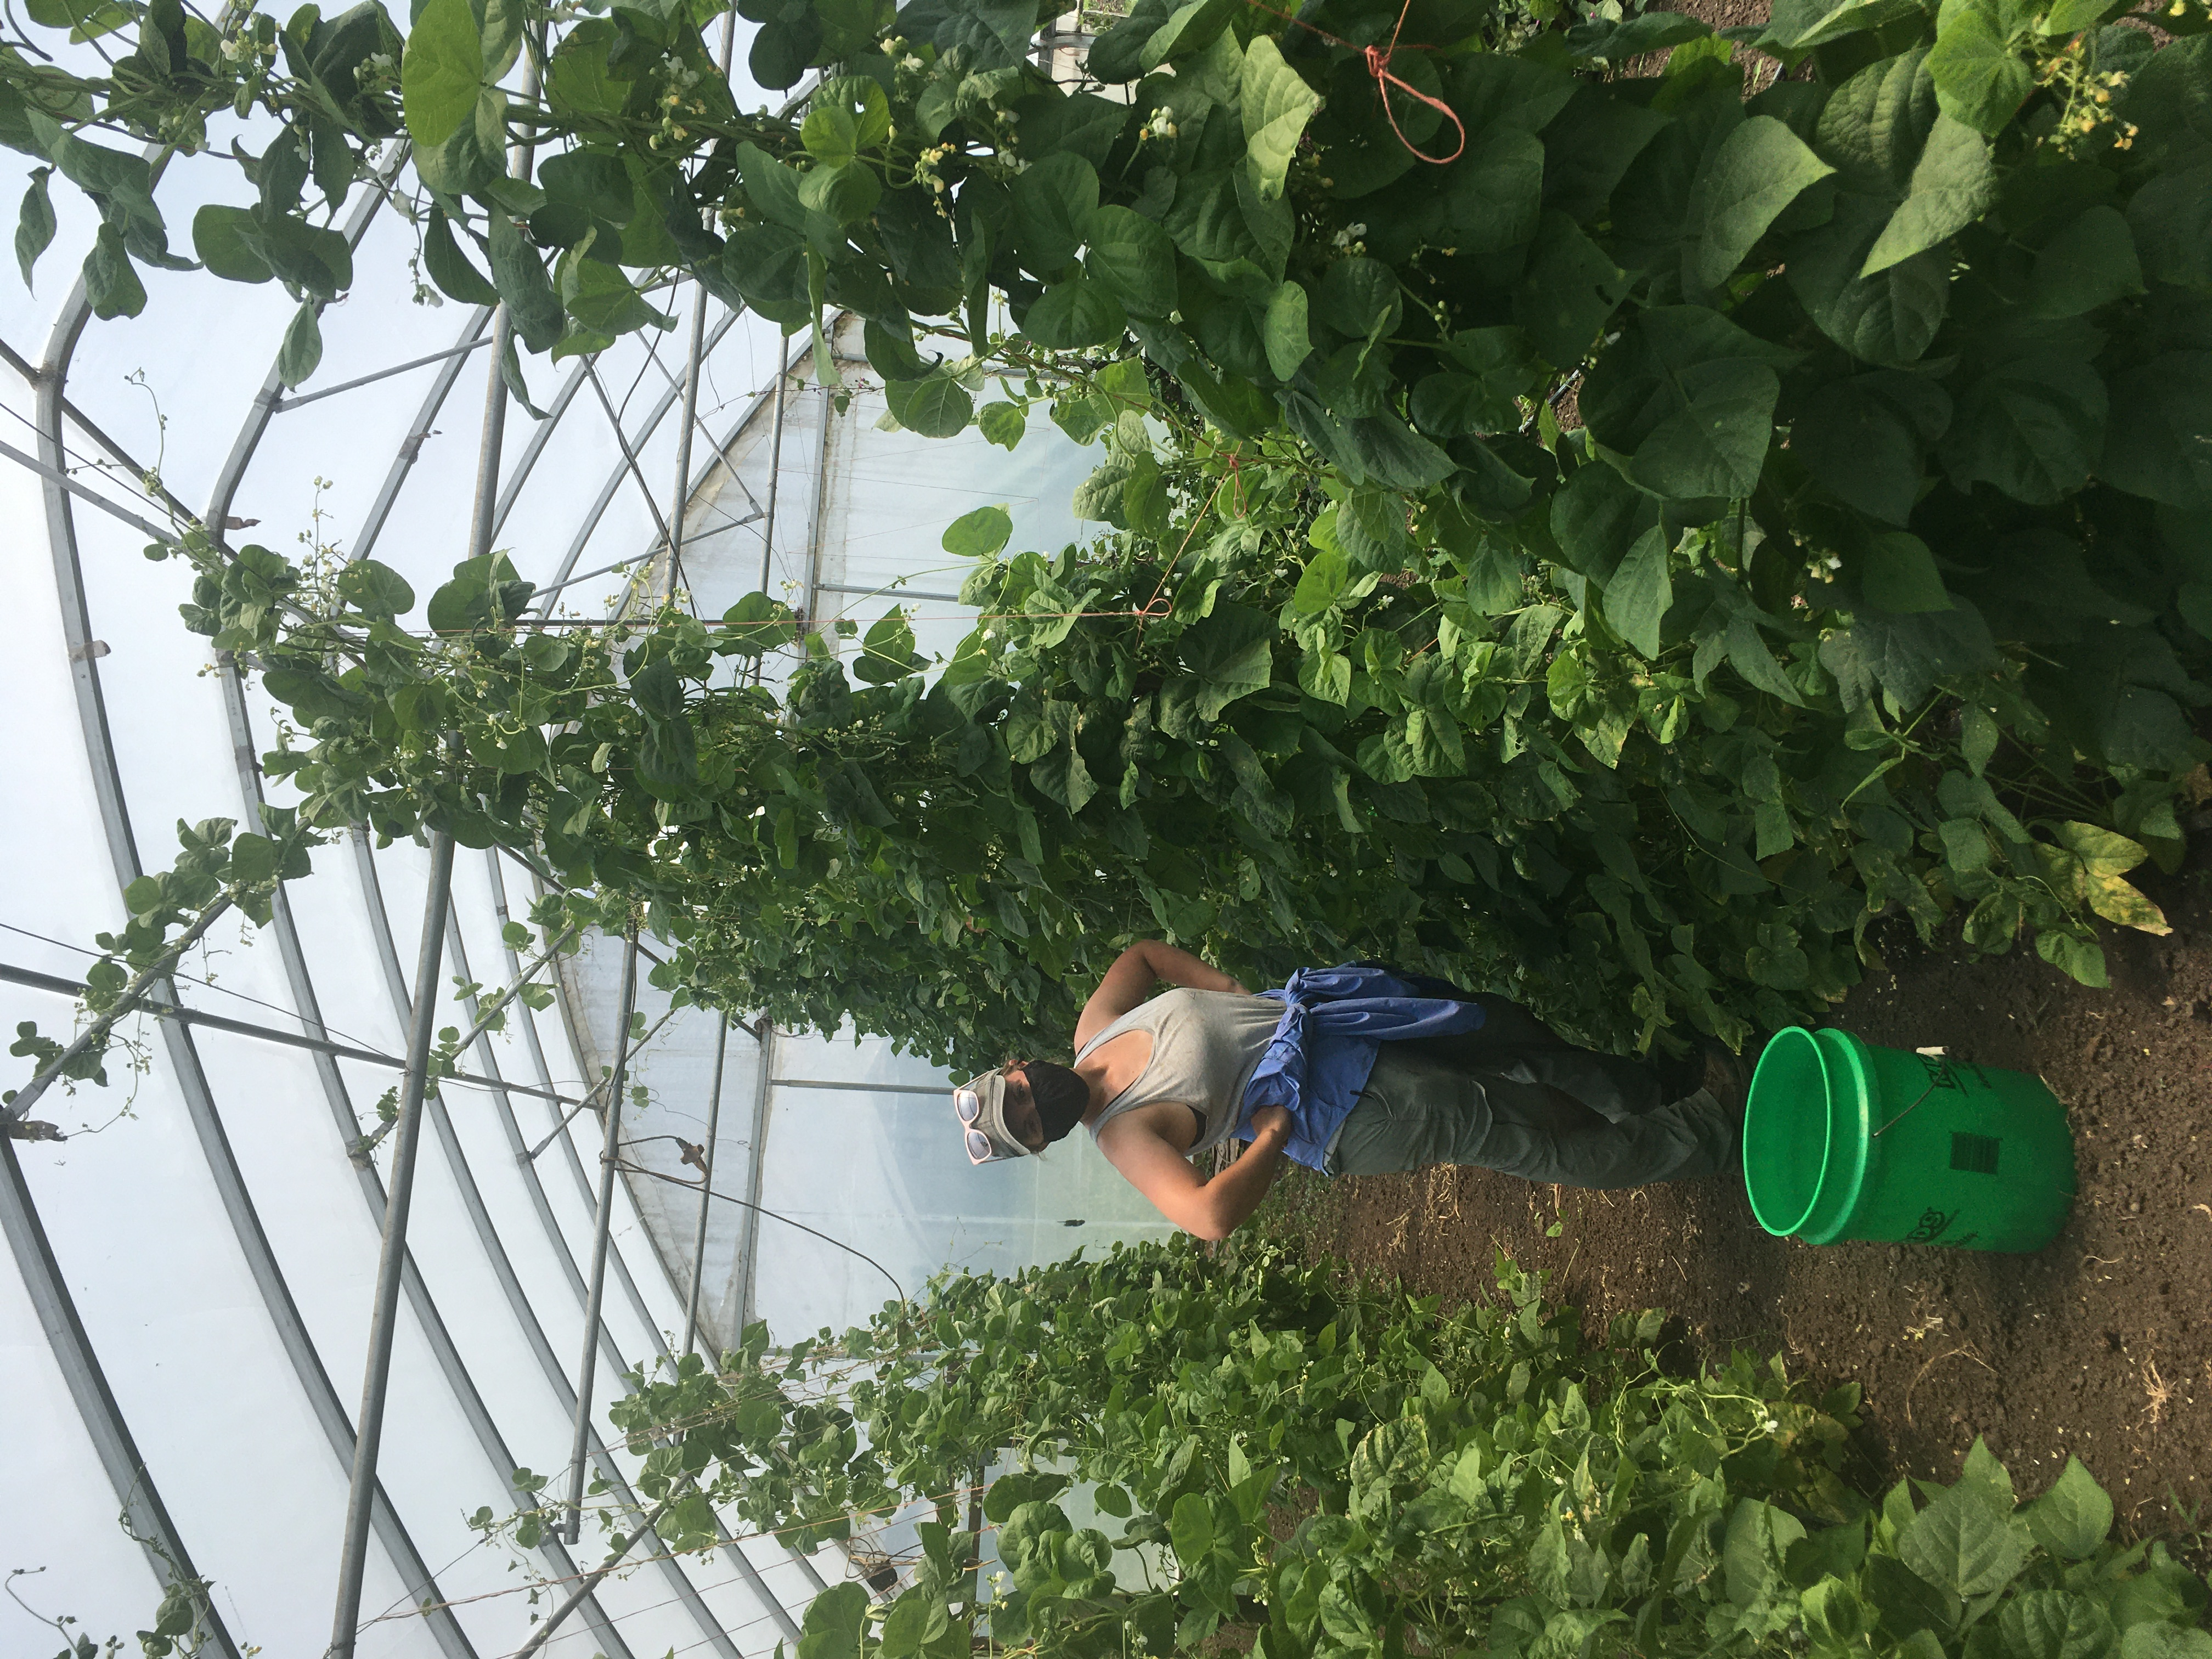 Farm Happenings for June 24, 2020: Hints of Summer